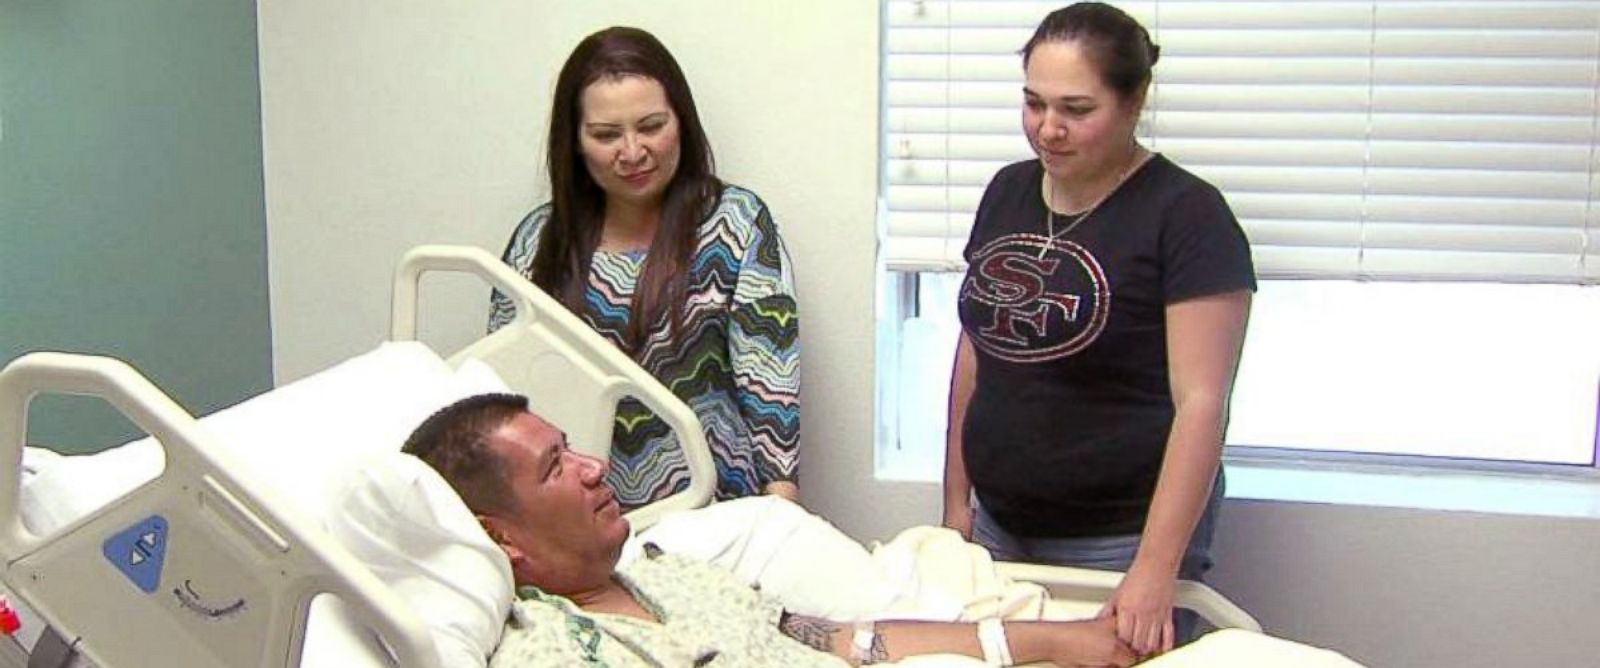 PHOTO: Joey Trevino is recovering after spending 30 hours adrift in the Gulf of Mexico.